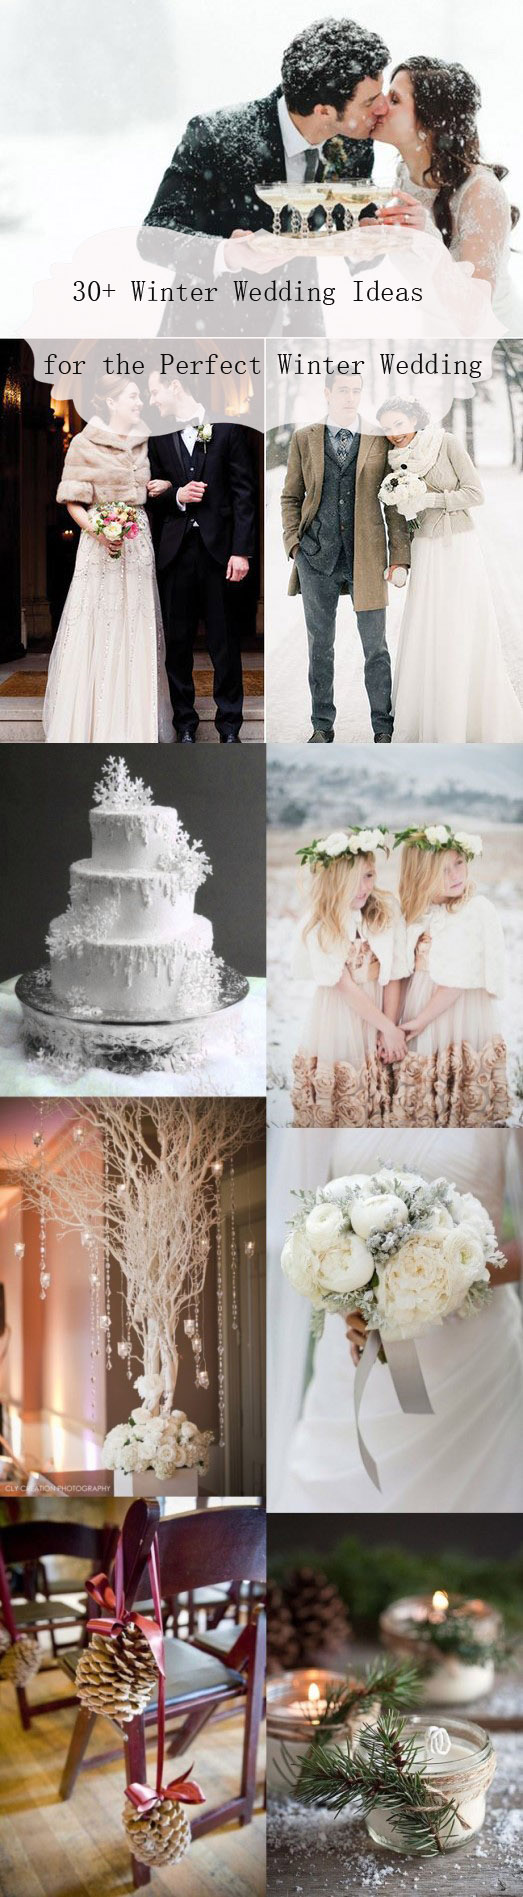 wedding ideas and themes 30 winter wedding ideas for the winter weddings 27960